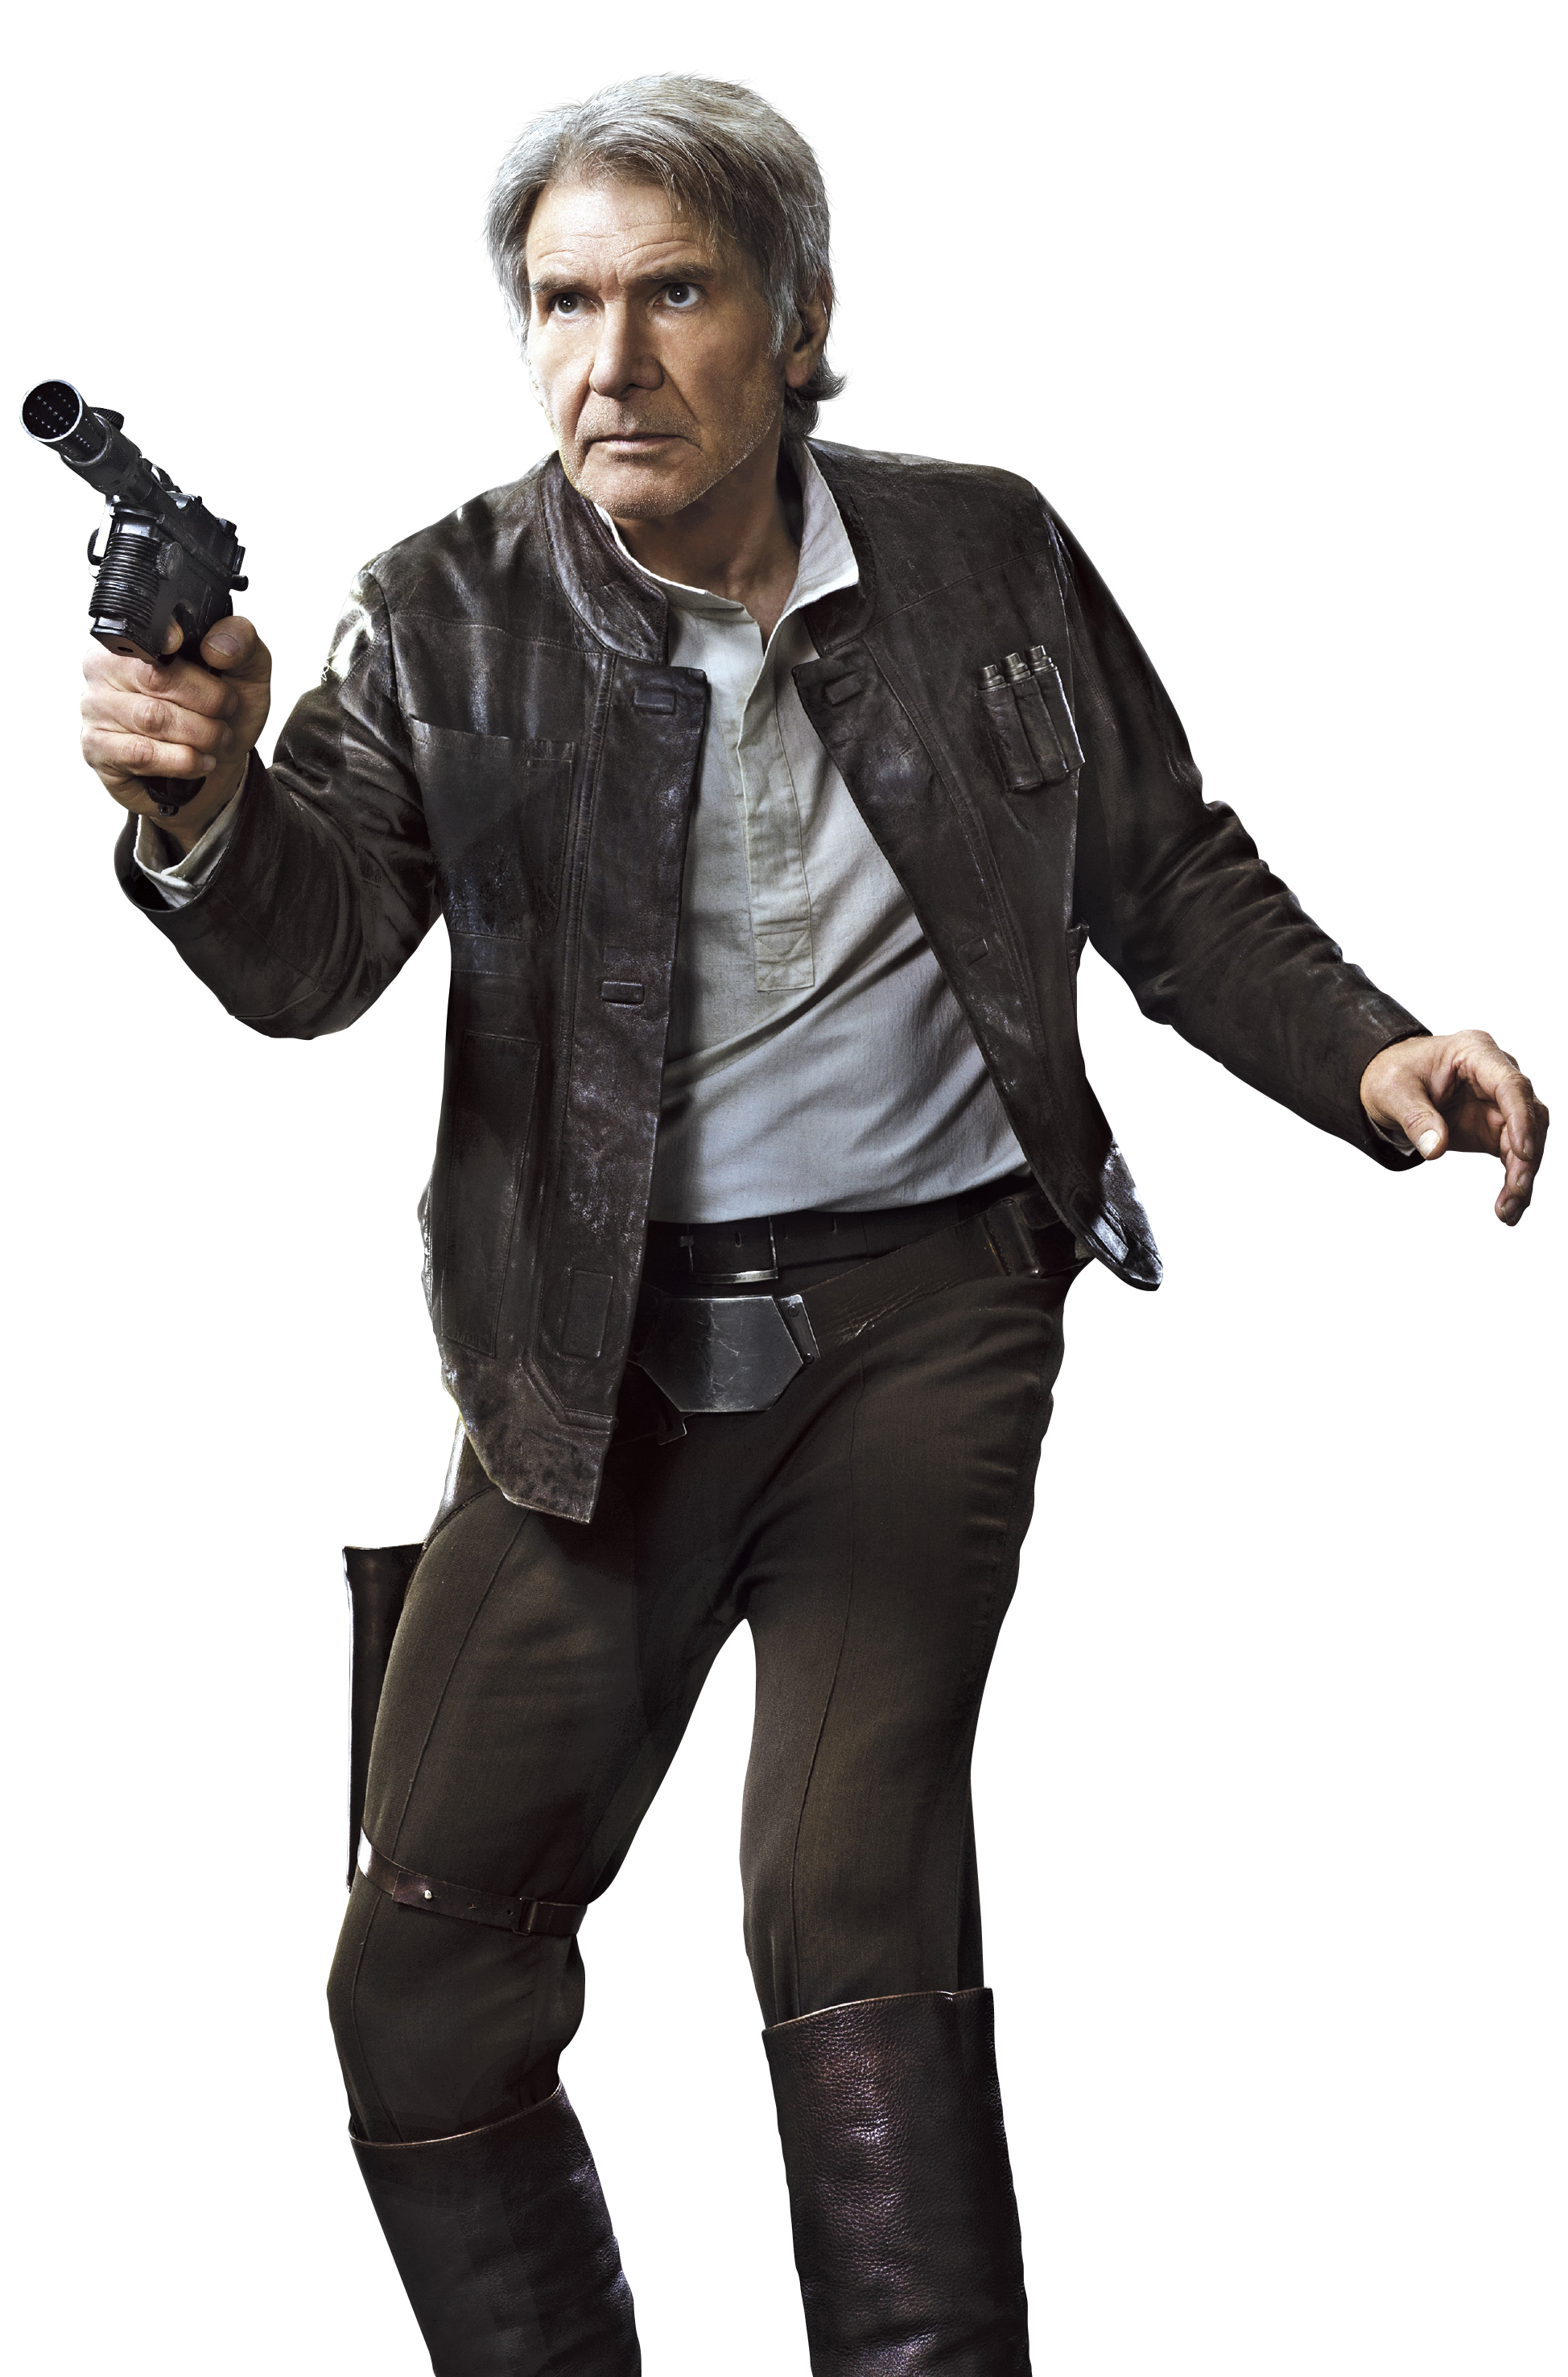 Han Solo Force Awakens Leather Jacket Han And Leia Harrison Ford